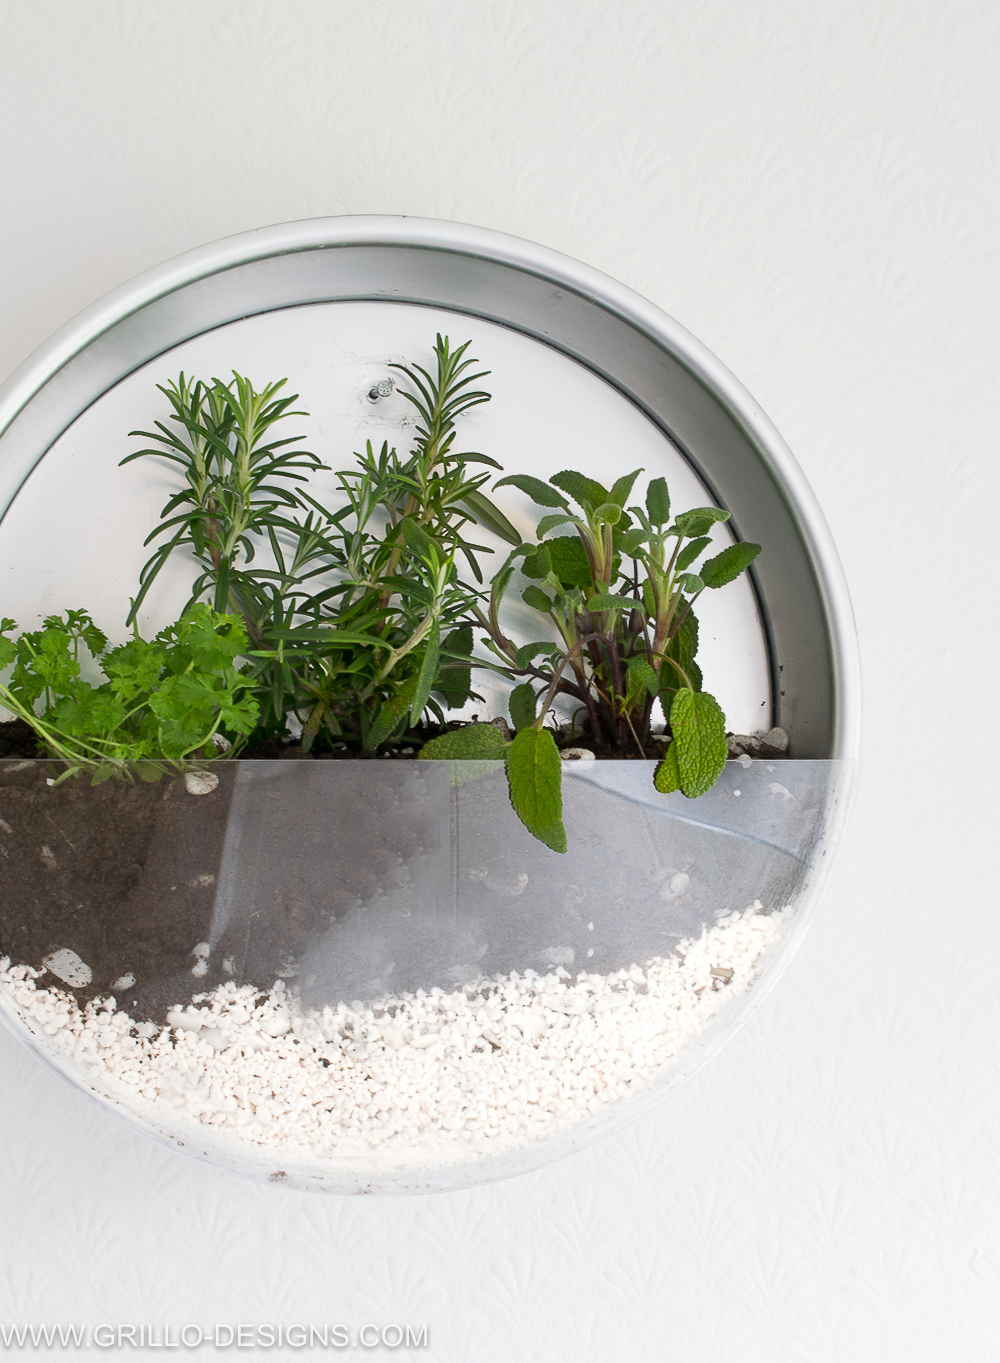 Herb Planter Make An Indoor Herb Planter  In 10 Minutes  Grillo Designs